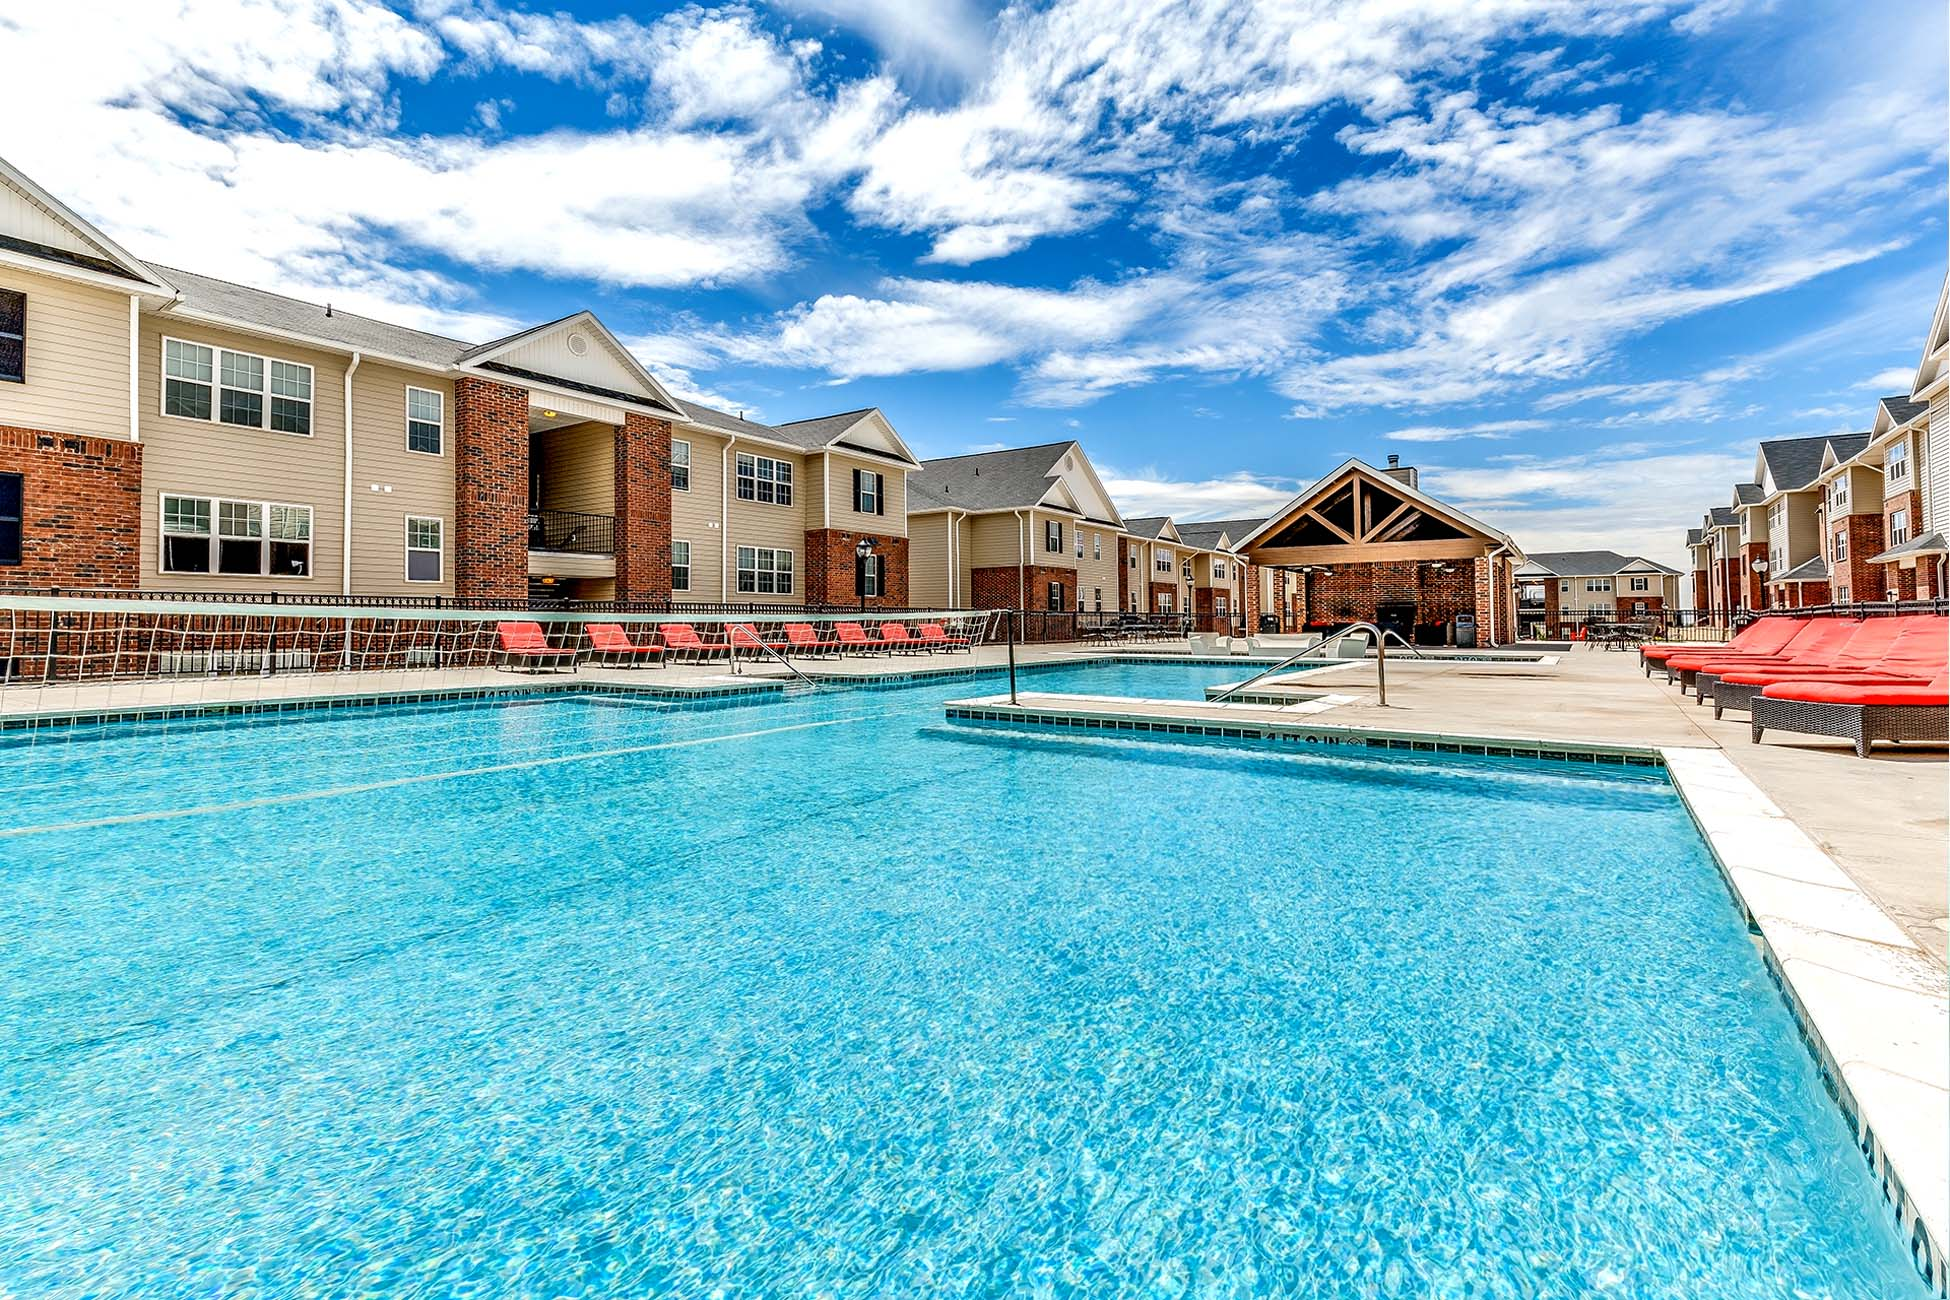 Verge Apartments For Rent In Laramie Wyoming WY | Live The Verge